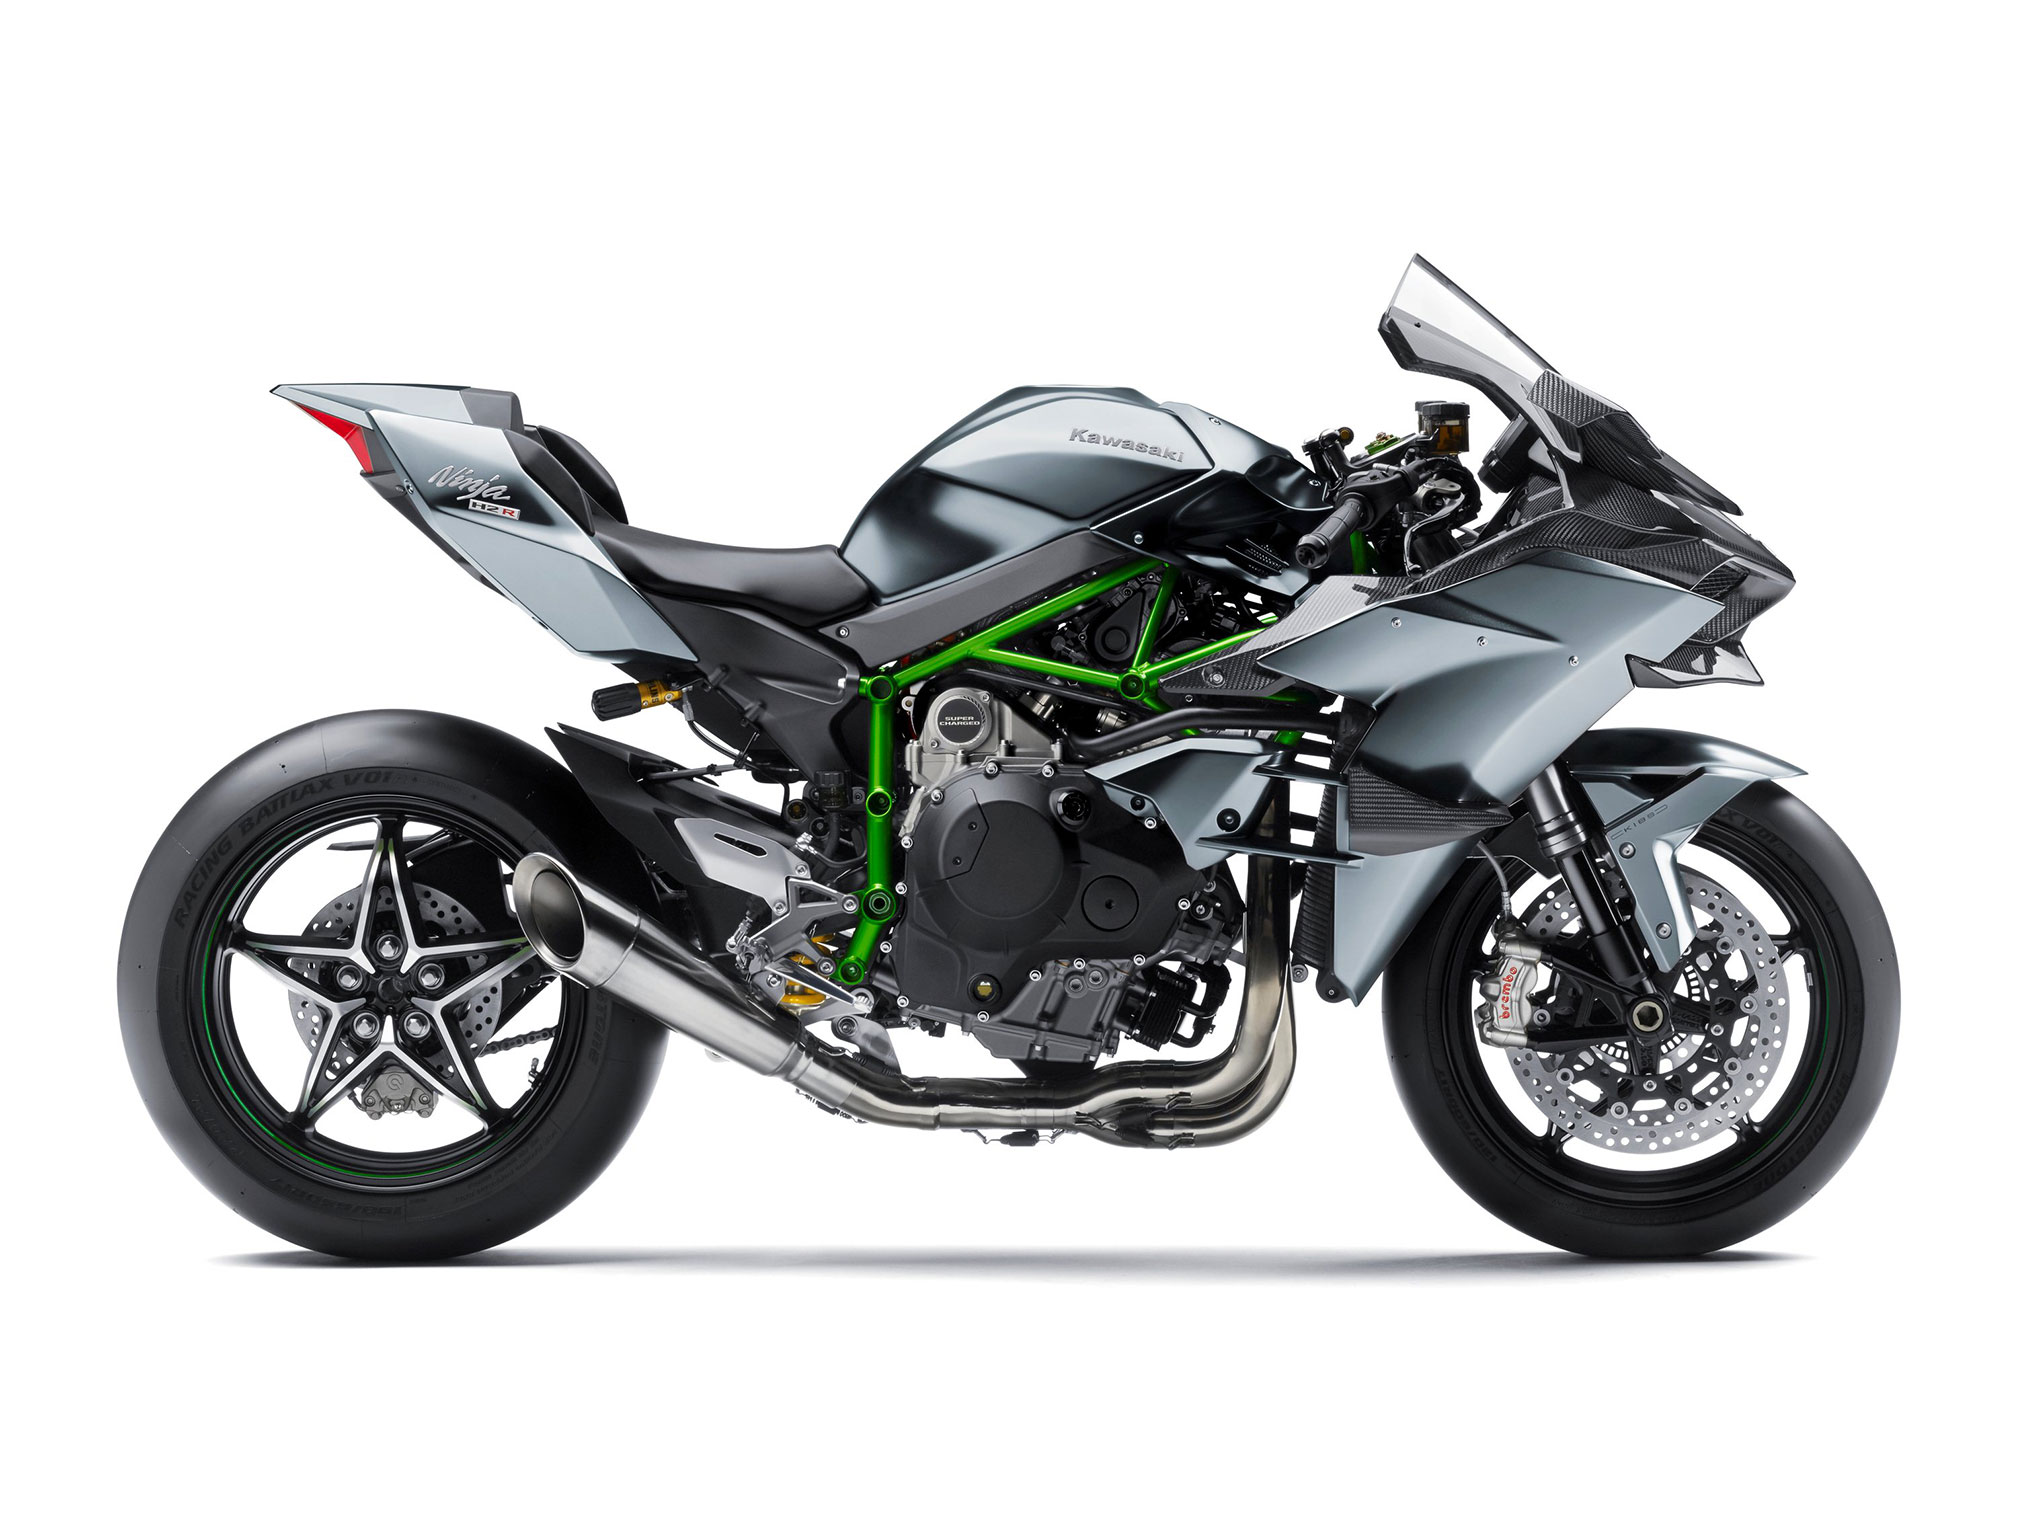 2017 kawasaki ninja h2r review. Black Bedroom Furniture Sets. Home Design Ideas